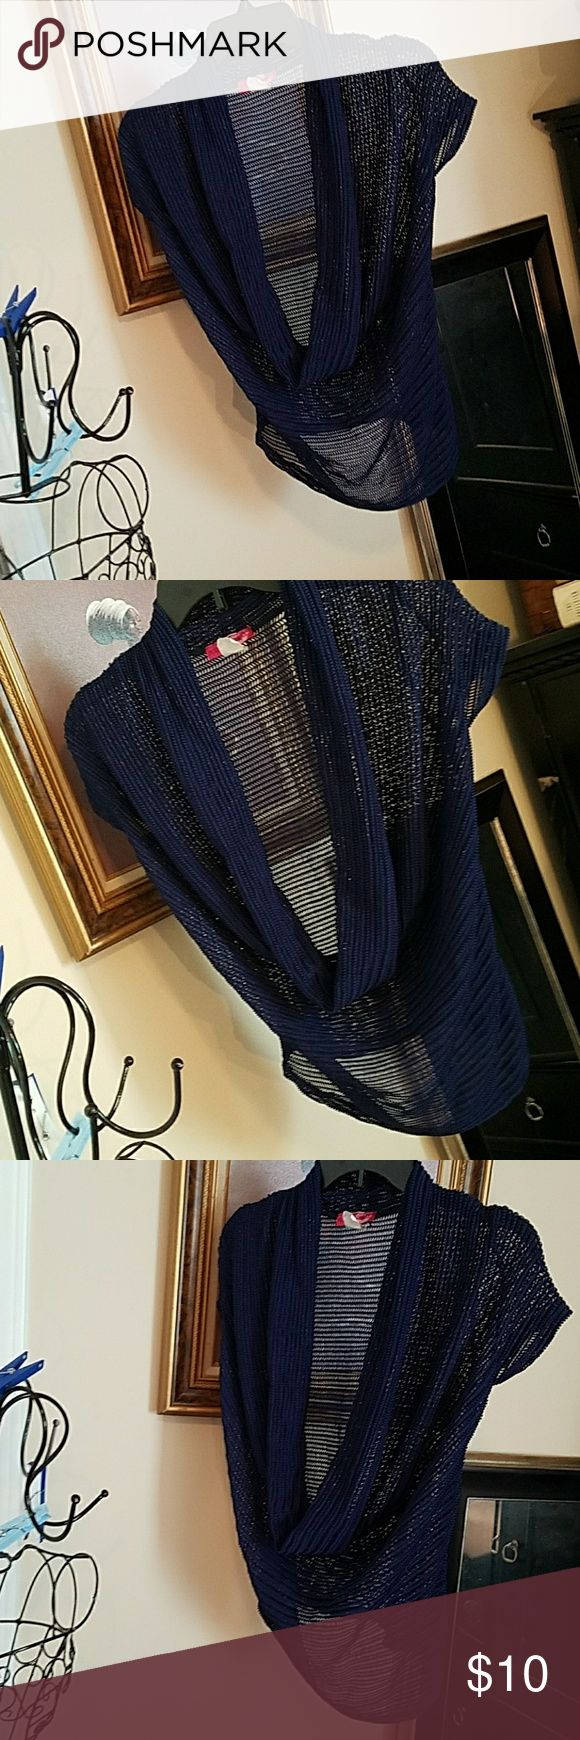 Body Central size Large sheer coverlet Navy Blue, sheer coverlet with draped cowl neck,  hi-lo design with knitted type design.  In excellent preloved condition.  100% polyester. Body Central size Large in Junior division. Body Central Tops